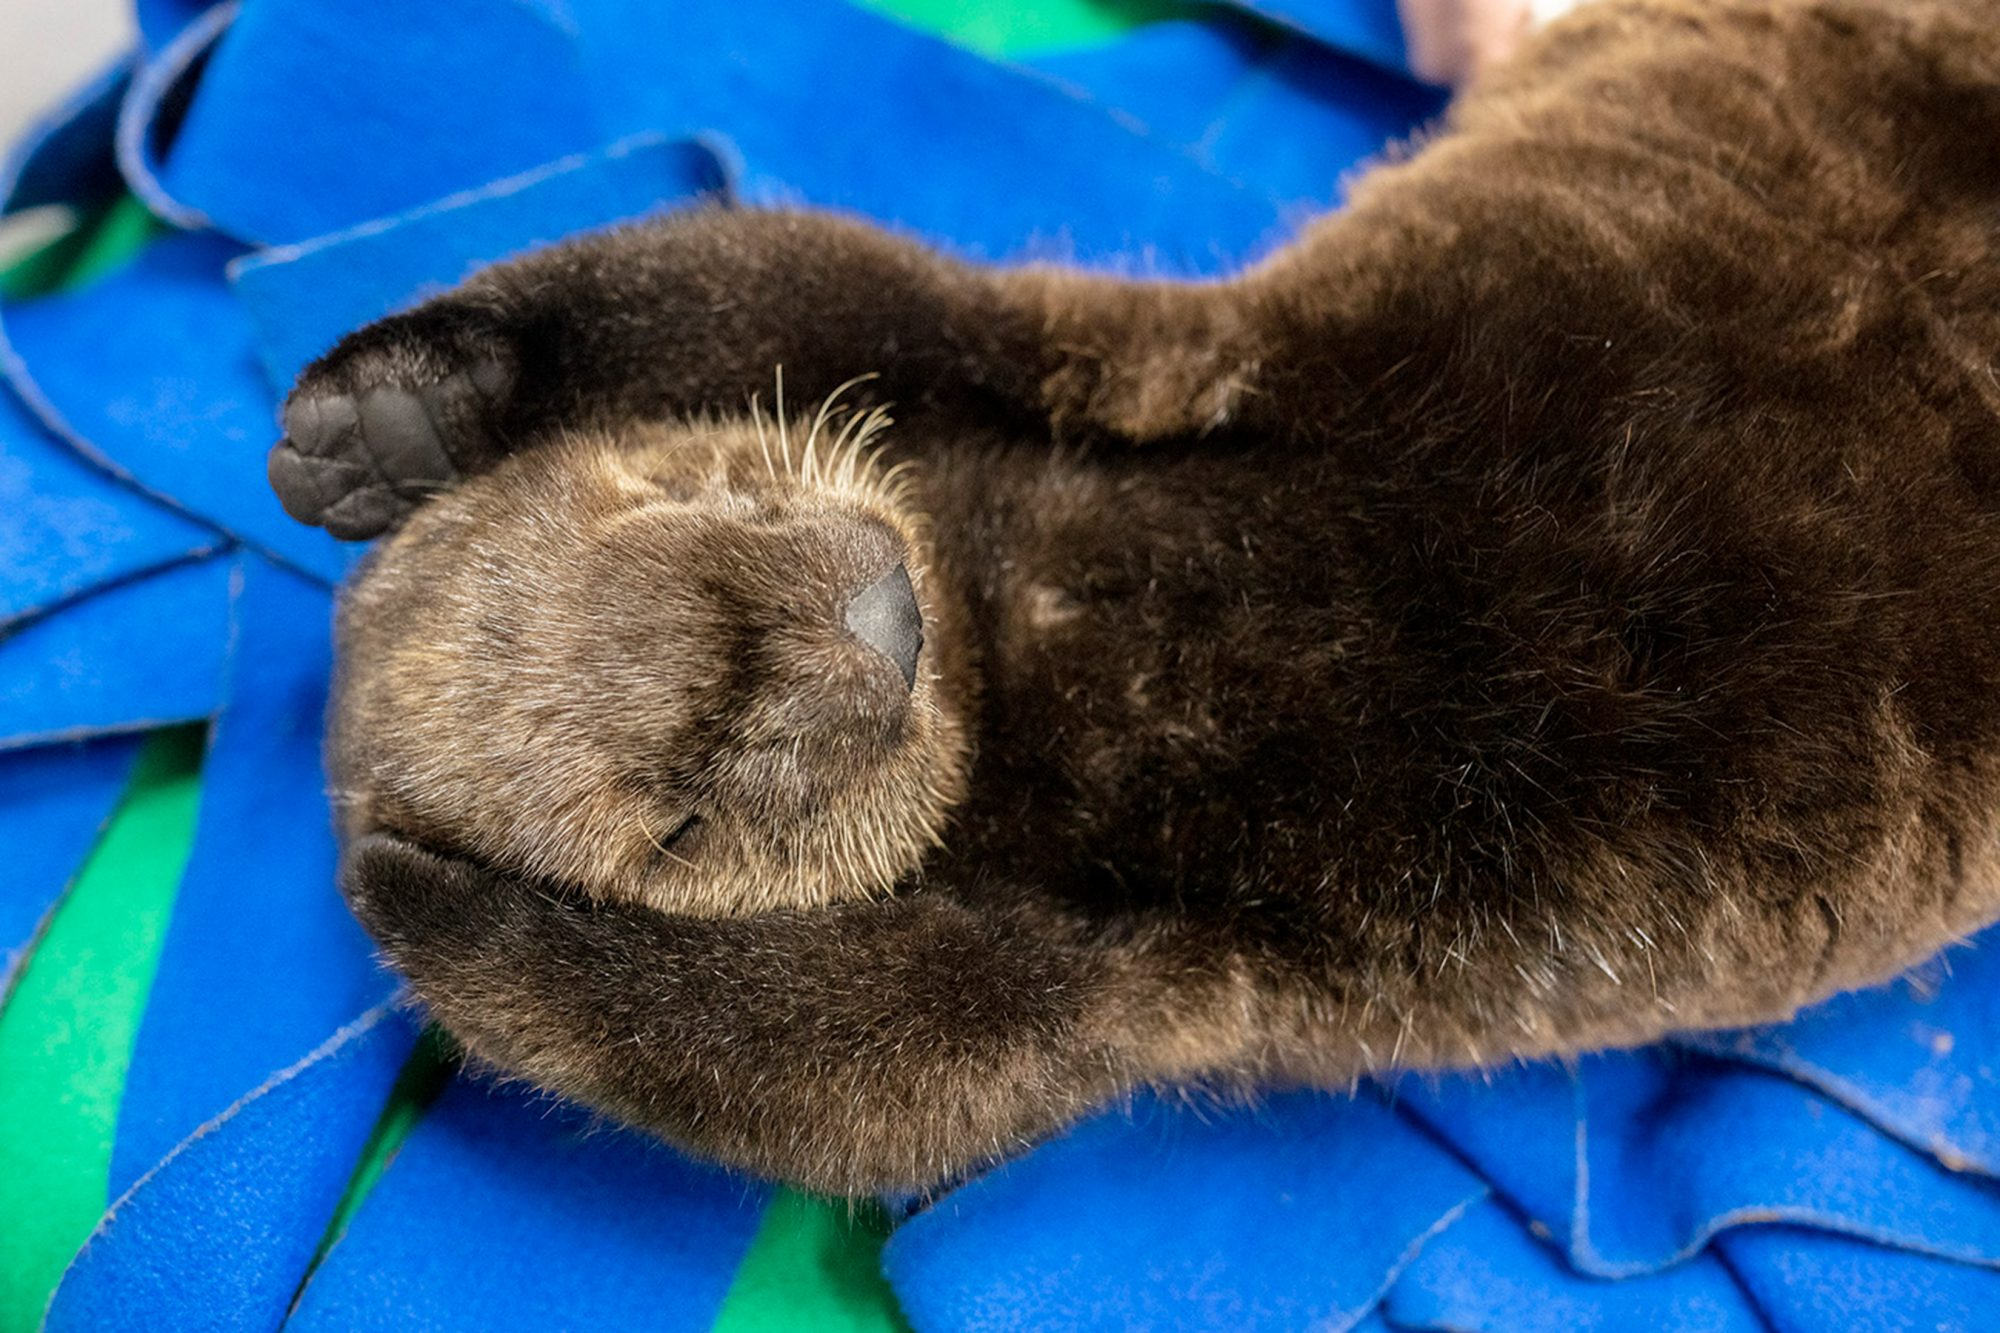 Otters Snuggling